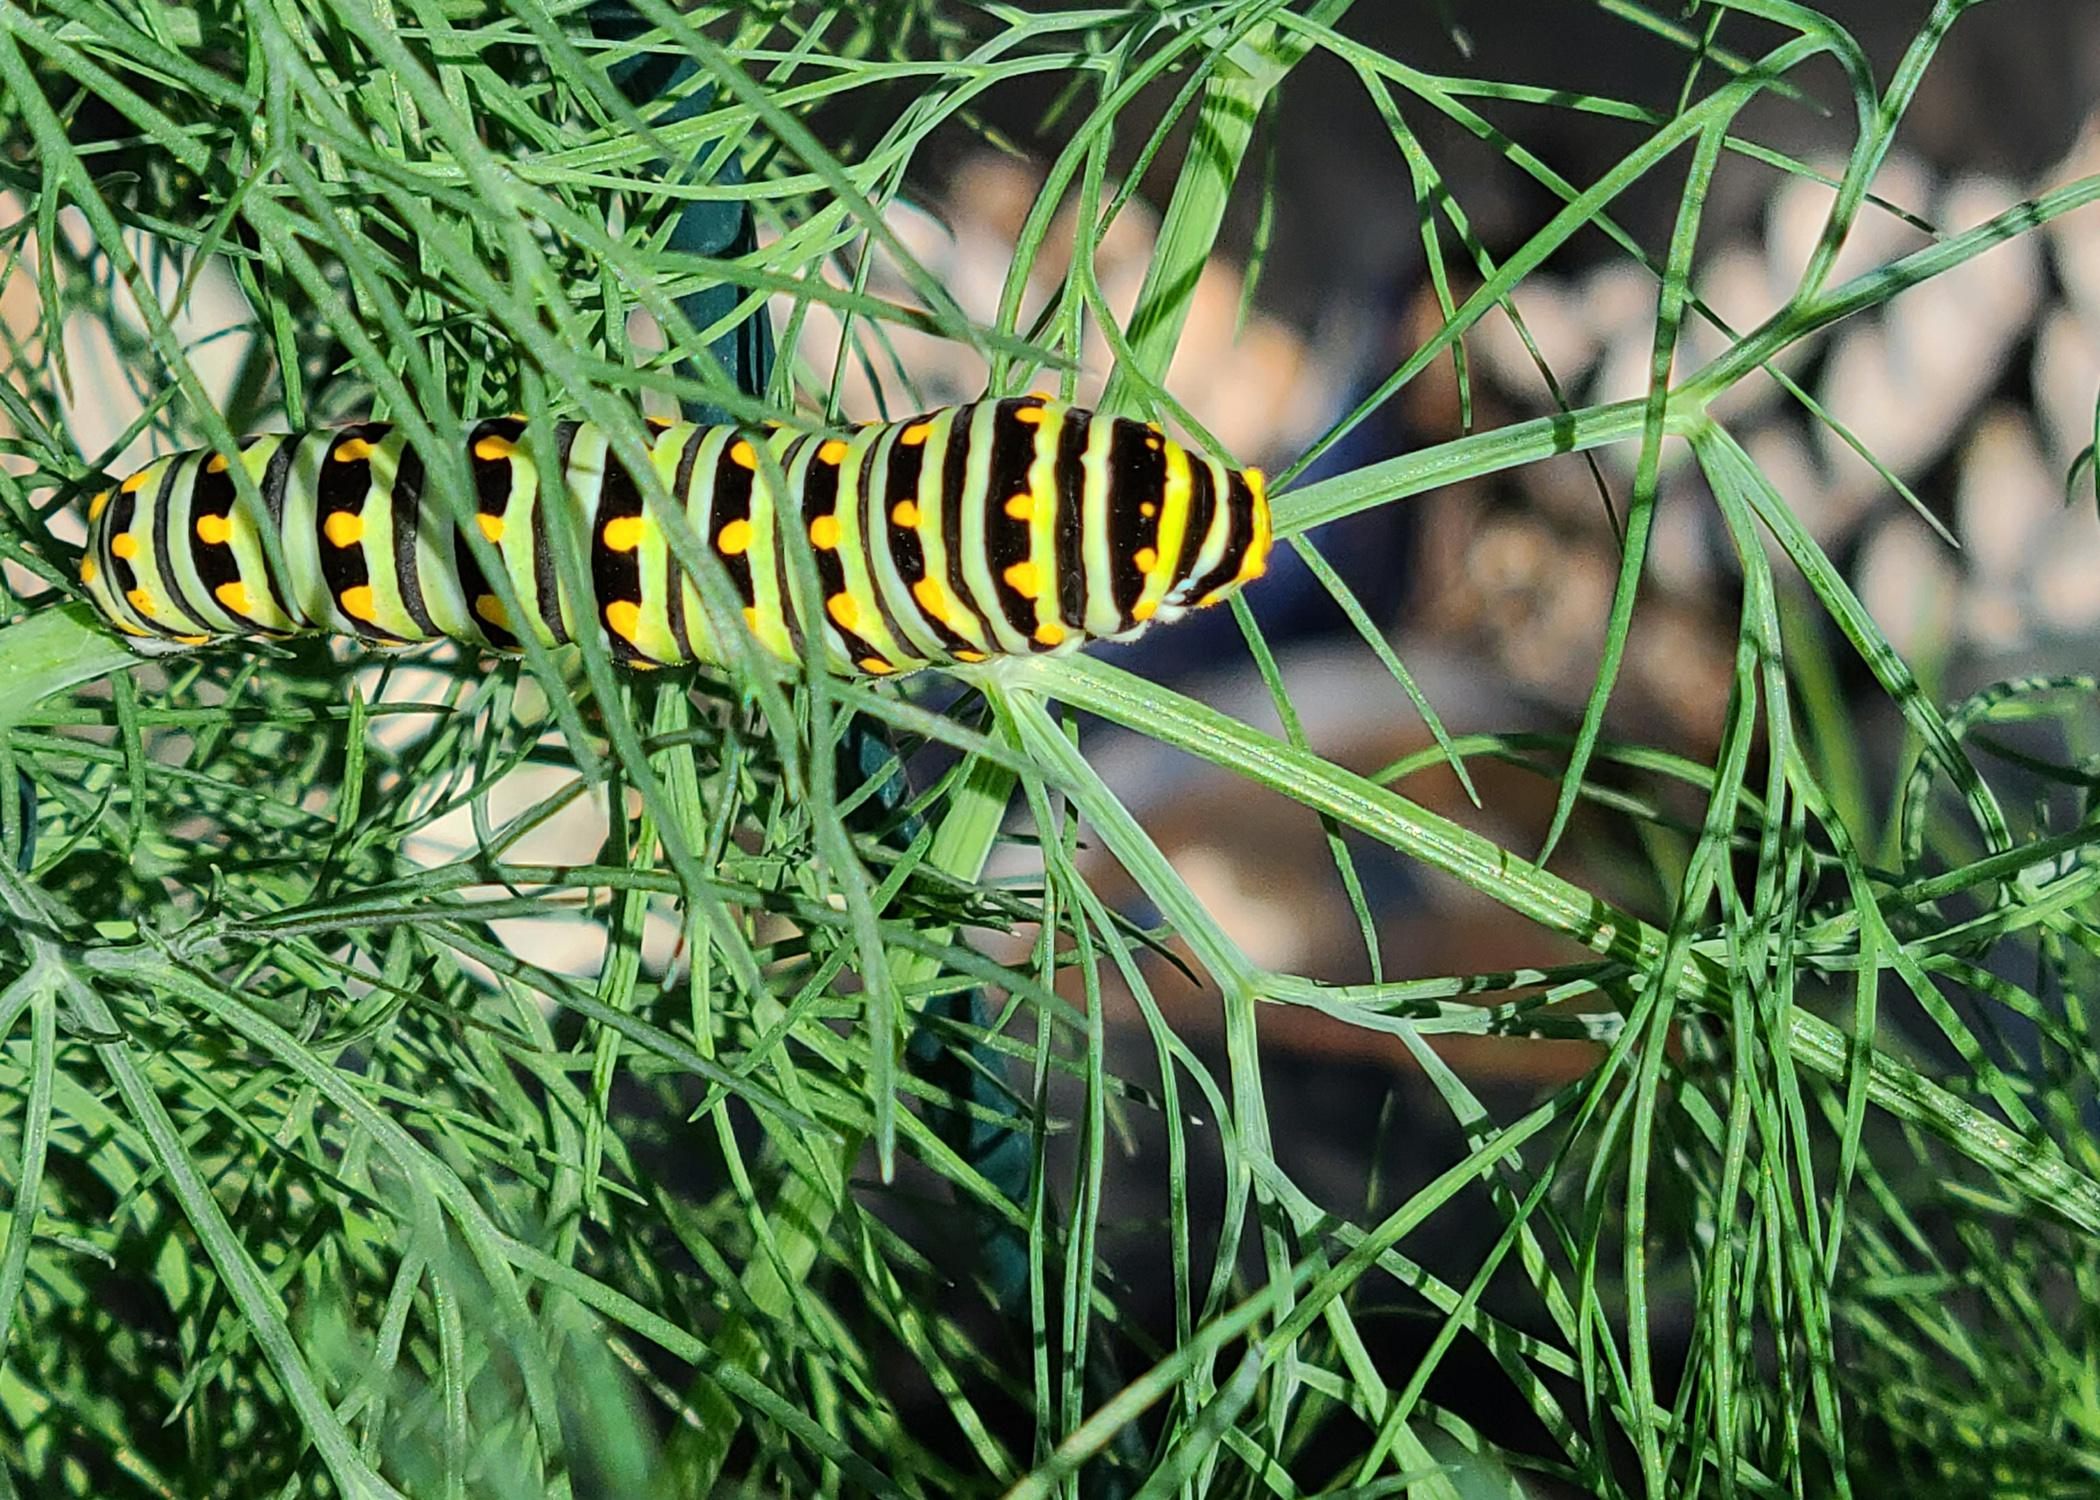 A large, striped butterfly rests on a green plant.